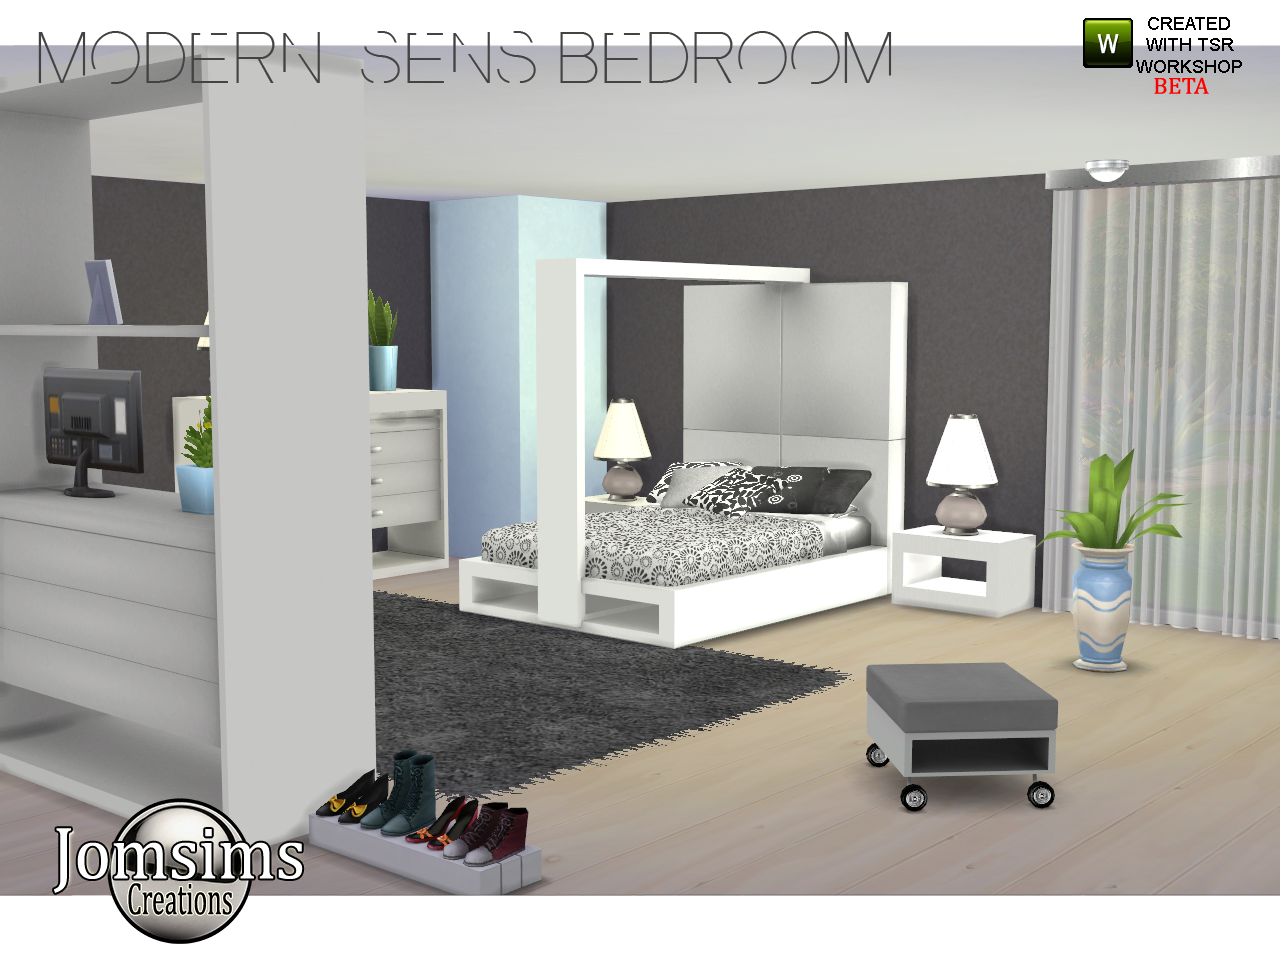 Jomsimscreations blog new bedroom modern sens sims 4 for Bedroom designs sims 4